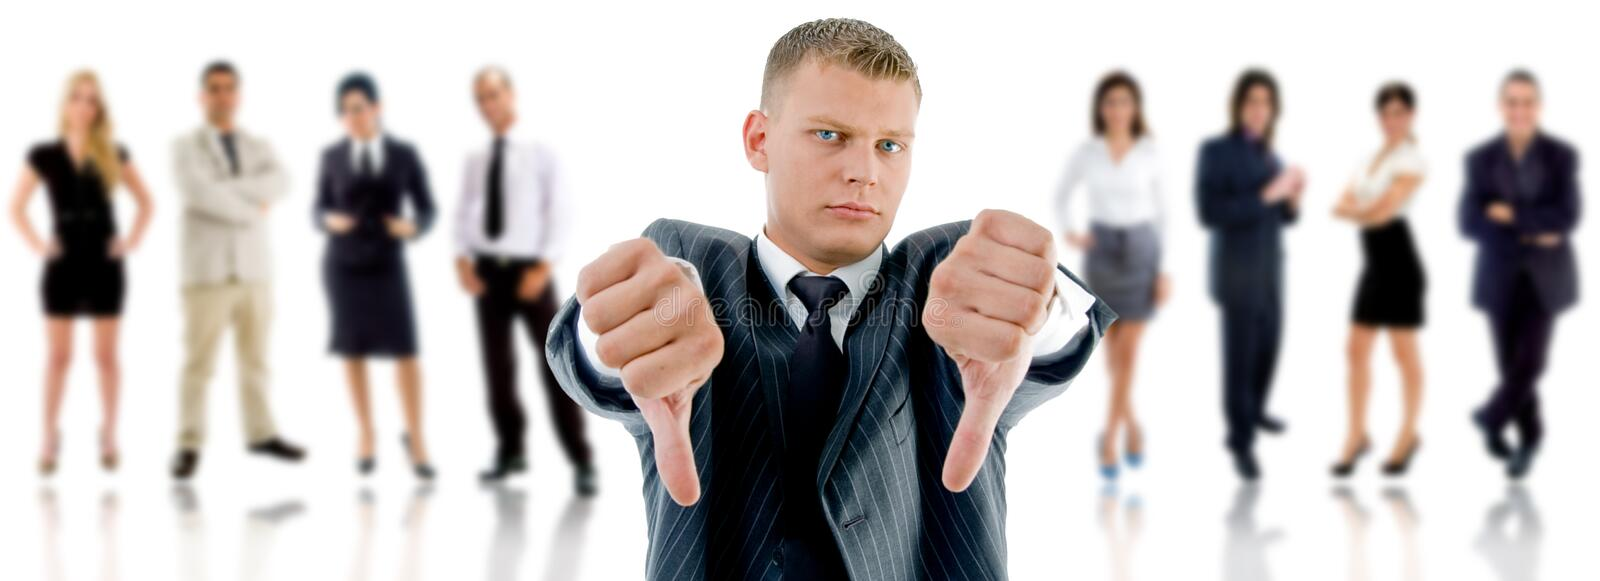 Download NO! People With Angry CEO Stock Photo - Image: 8564040